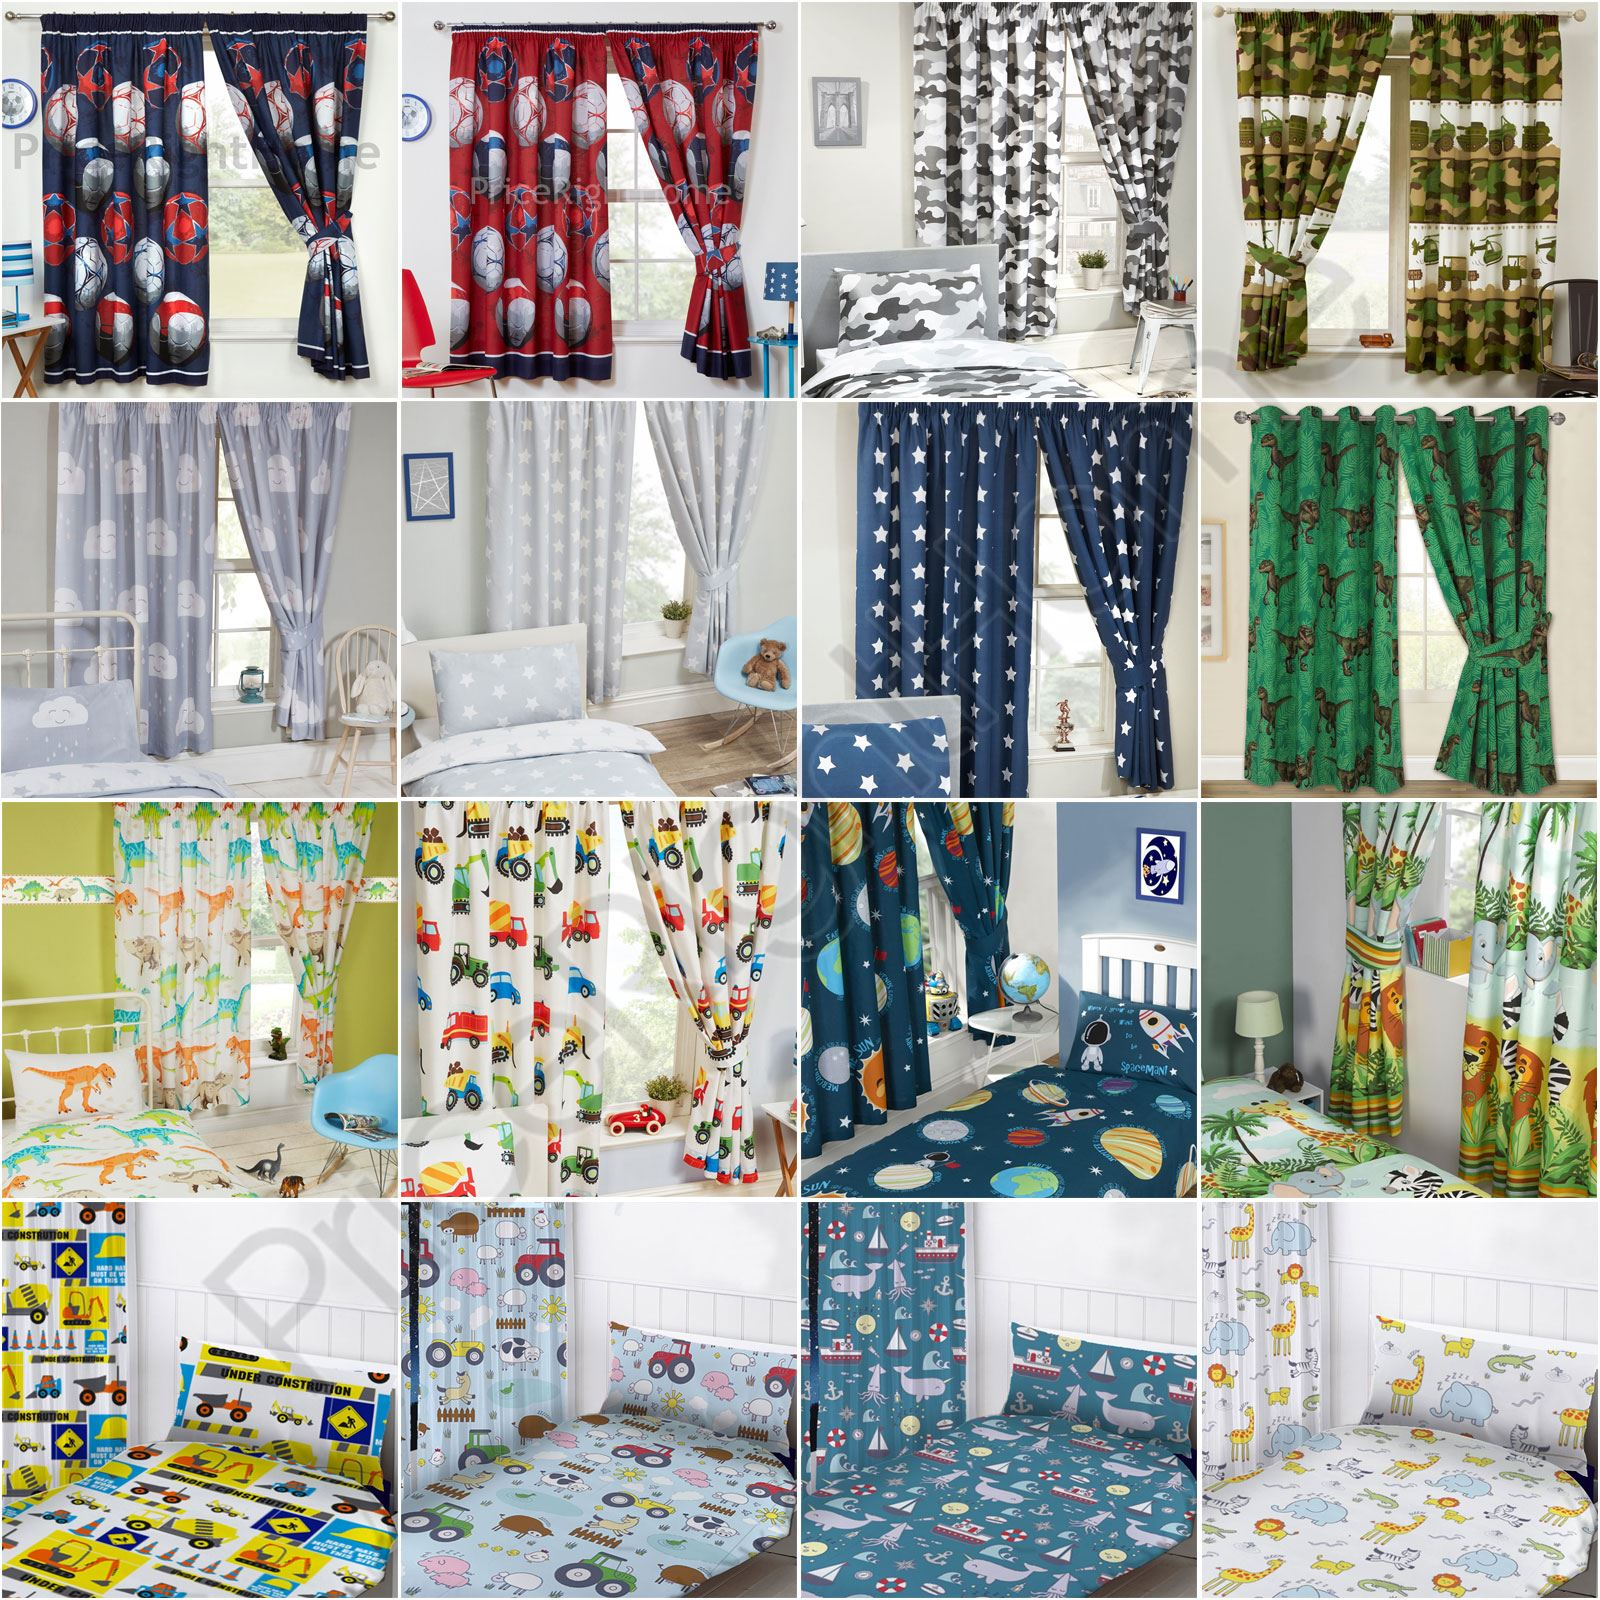 Details about BOYS BEDROOM CURTAINS 66\